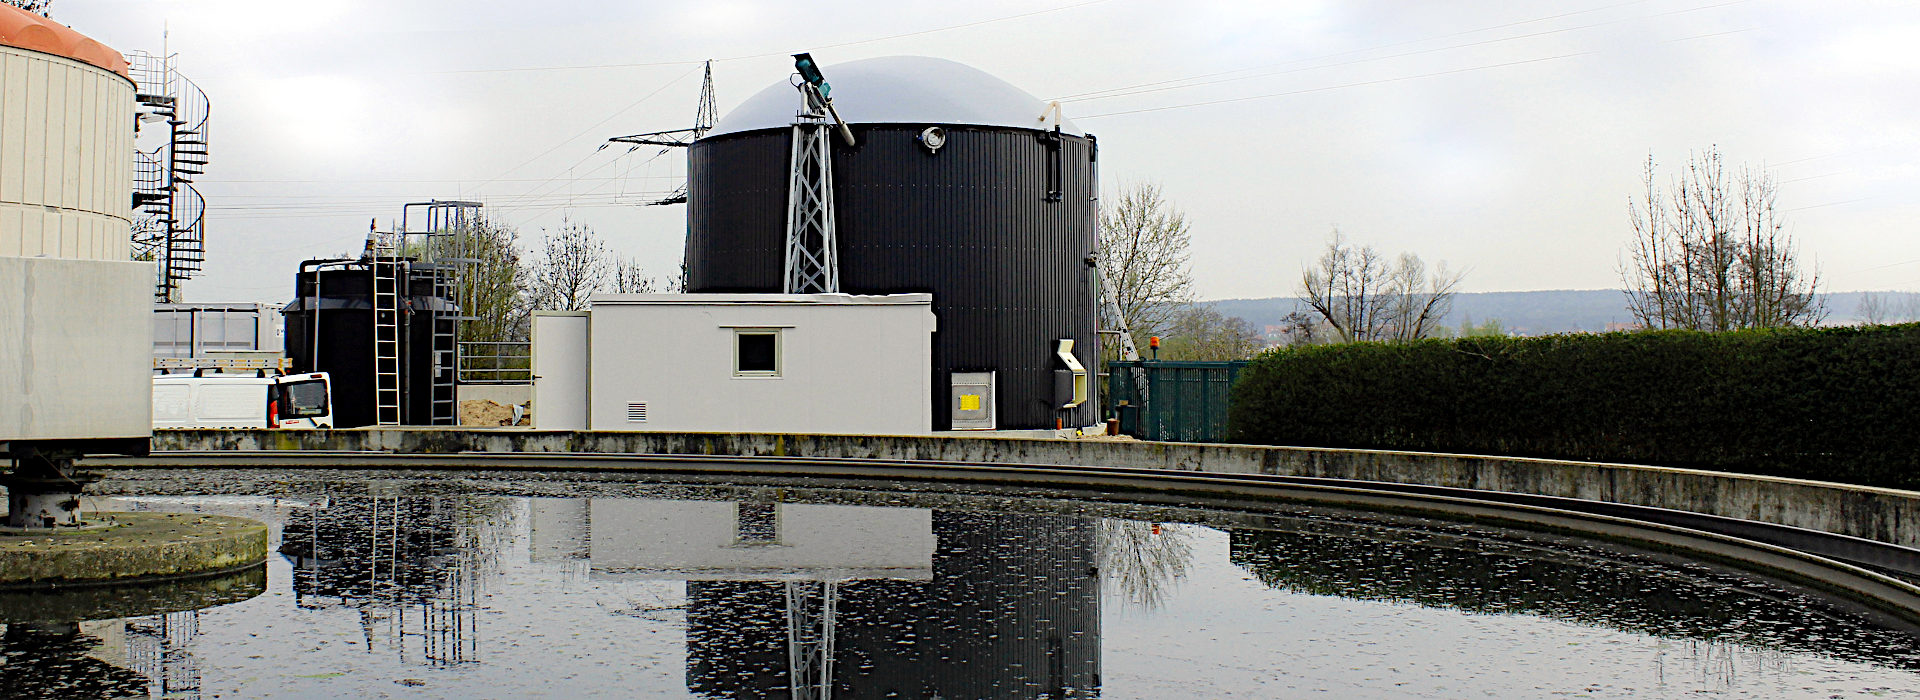 wwtp with digester.